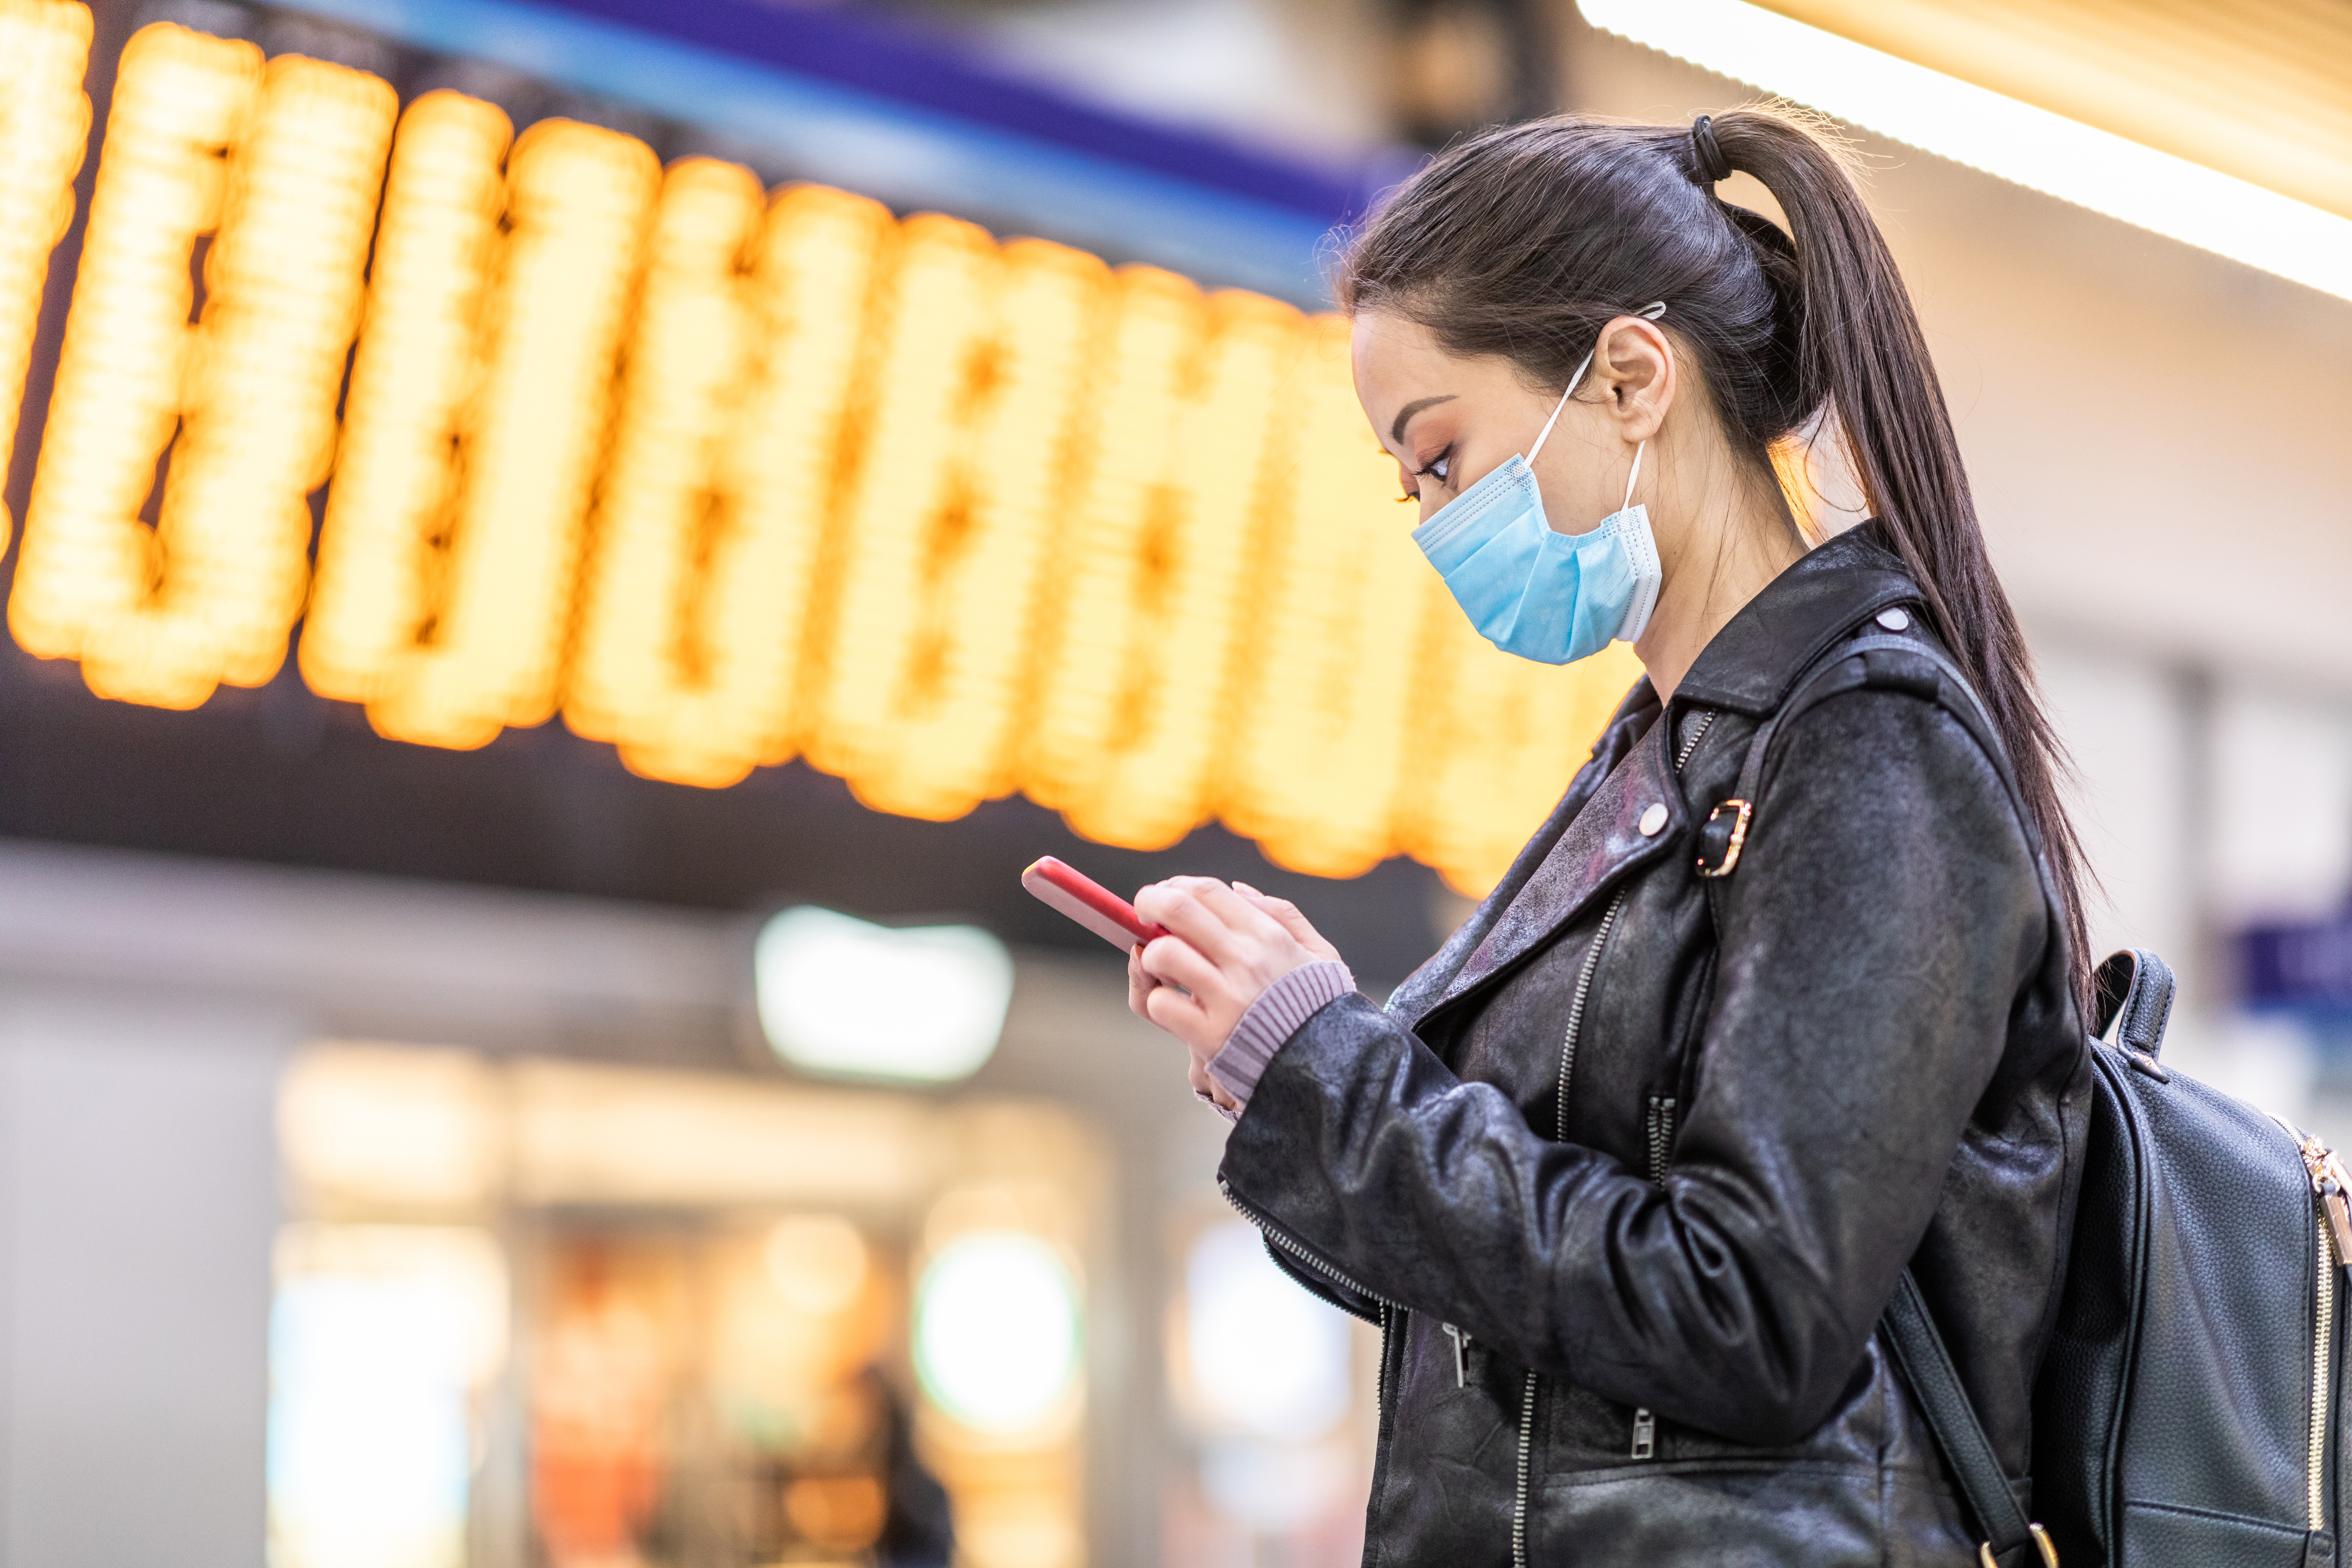 Chinese woman wearing face mask at train station to protect from smog and virus - young asian woman looking at her smartphone with departure arrivals board behind - health and travel concepts